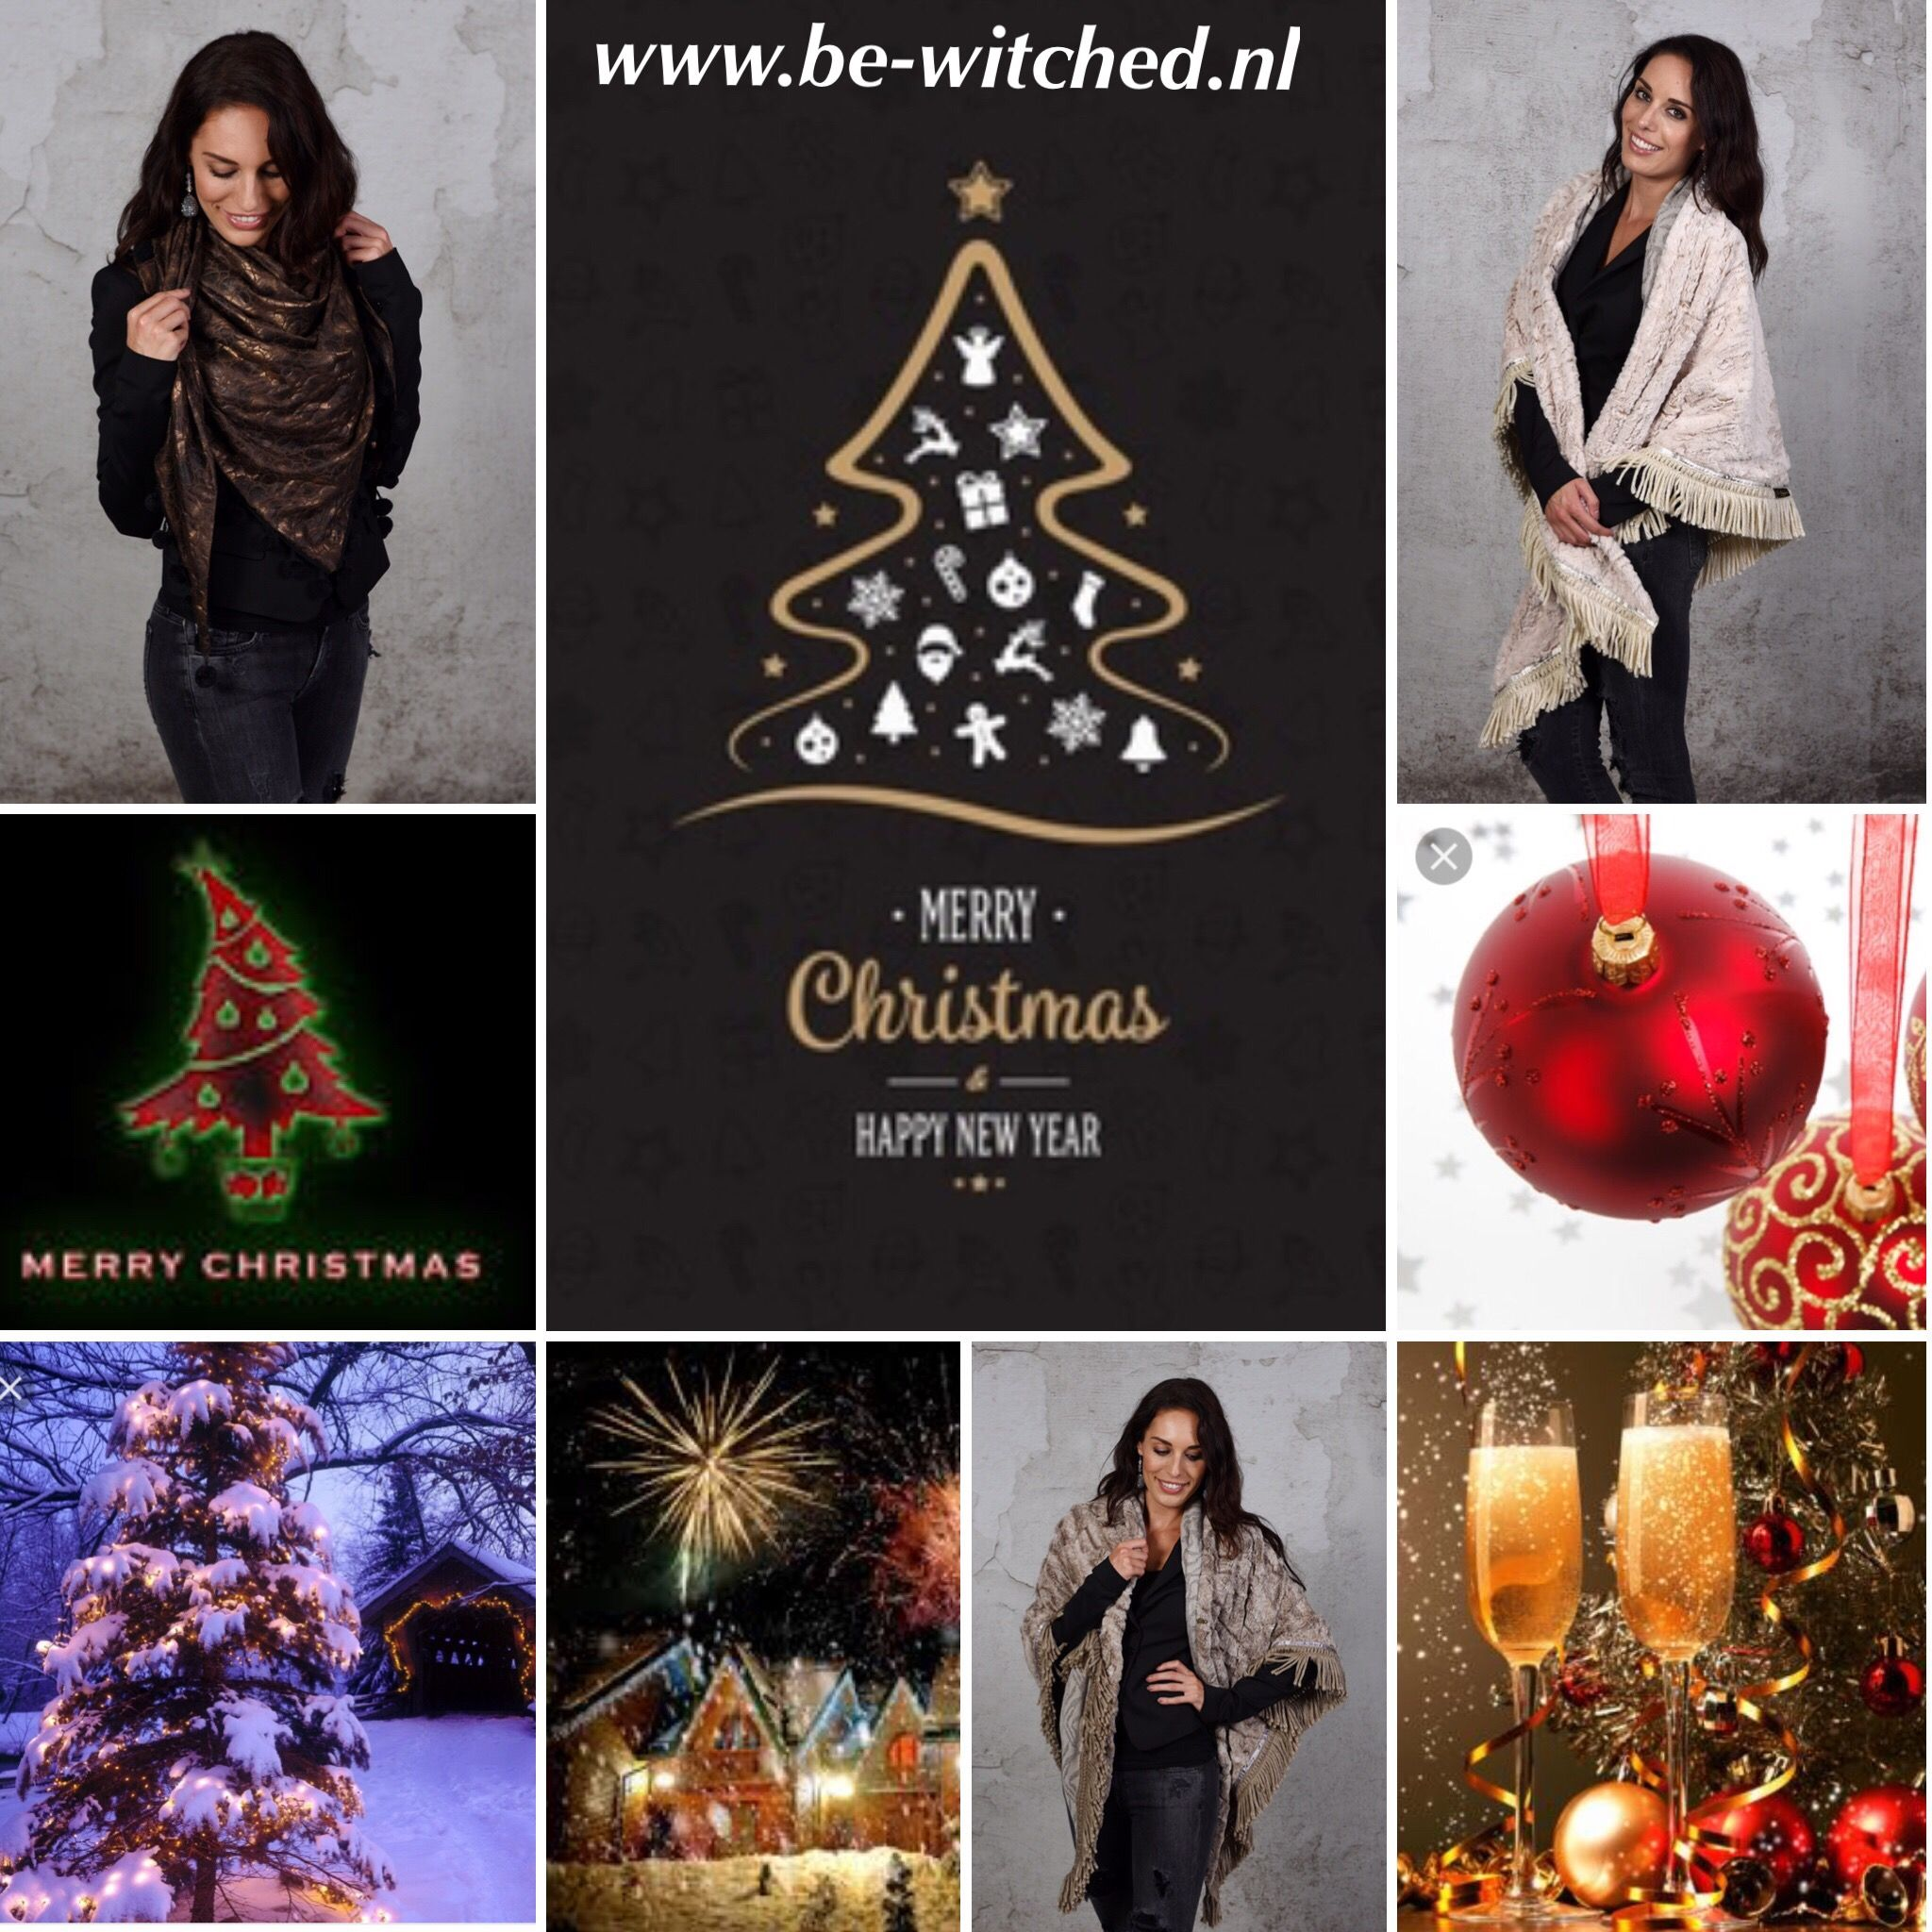 Iedereen hele fijne en gezellige kerstdagen namens ons be-witched team!! 😘 Happy christmas..! 🎄🎄🎄🎄🎄🎄  www.be-witched.nl